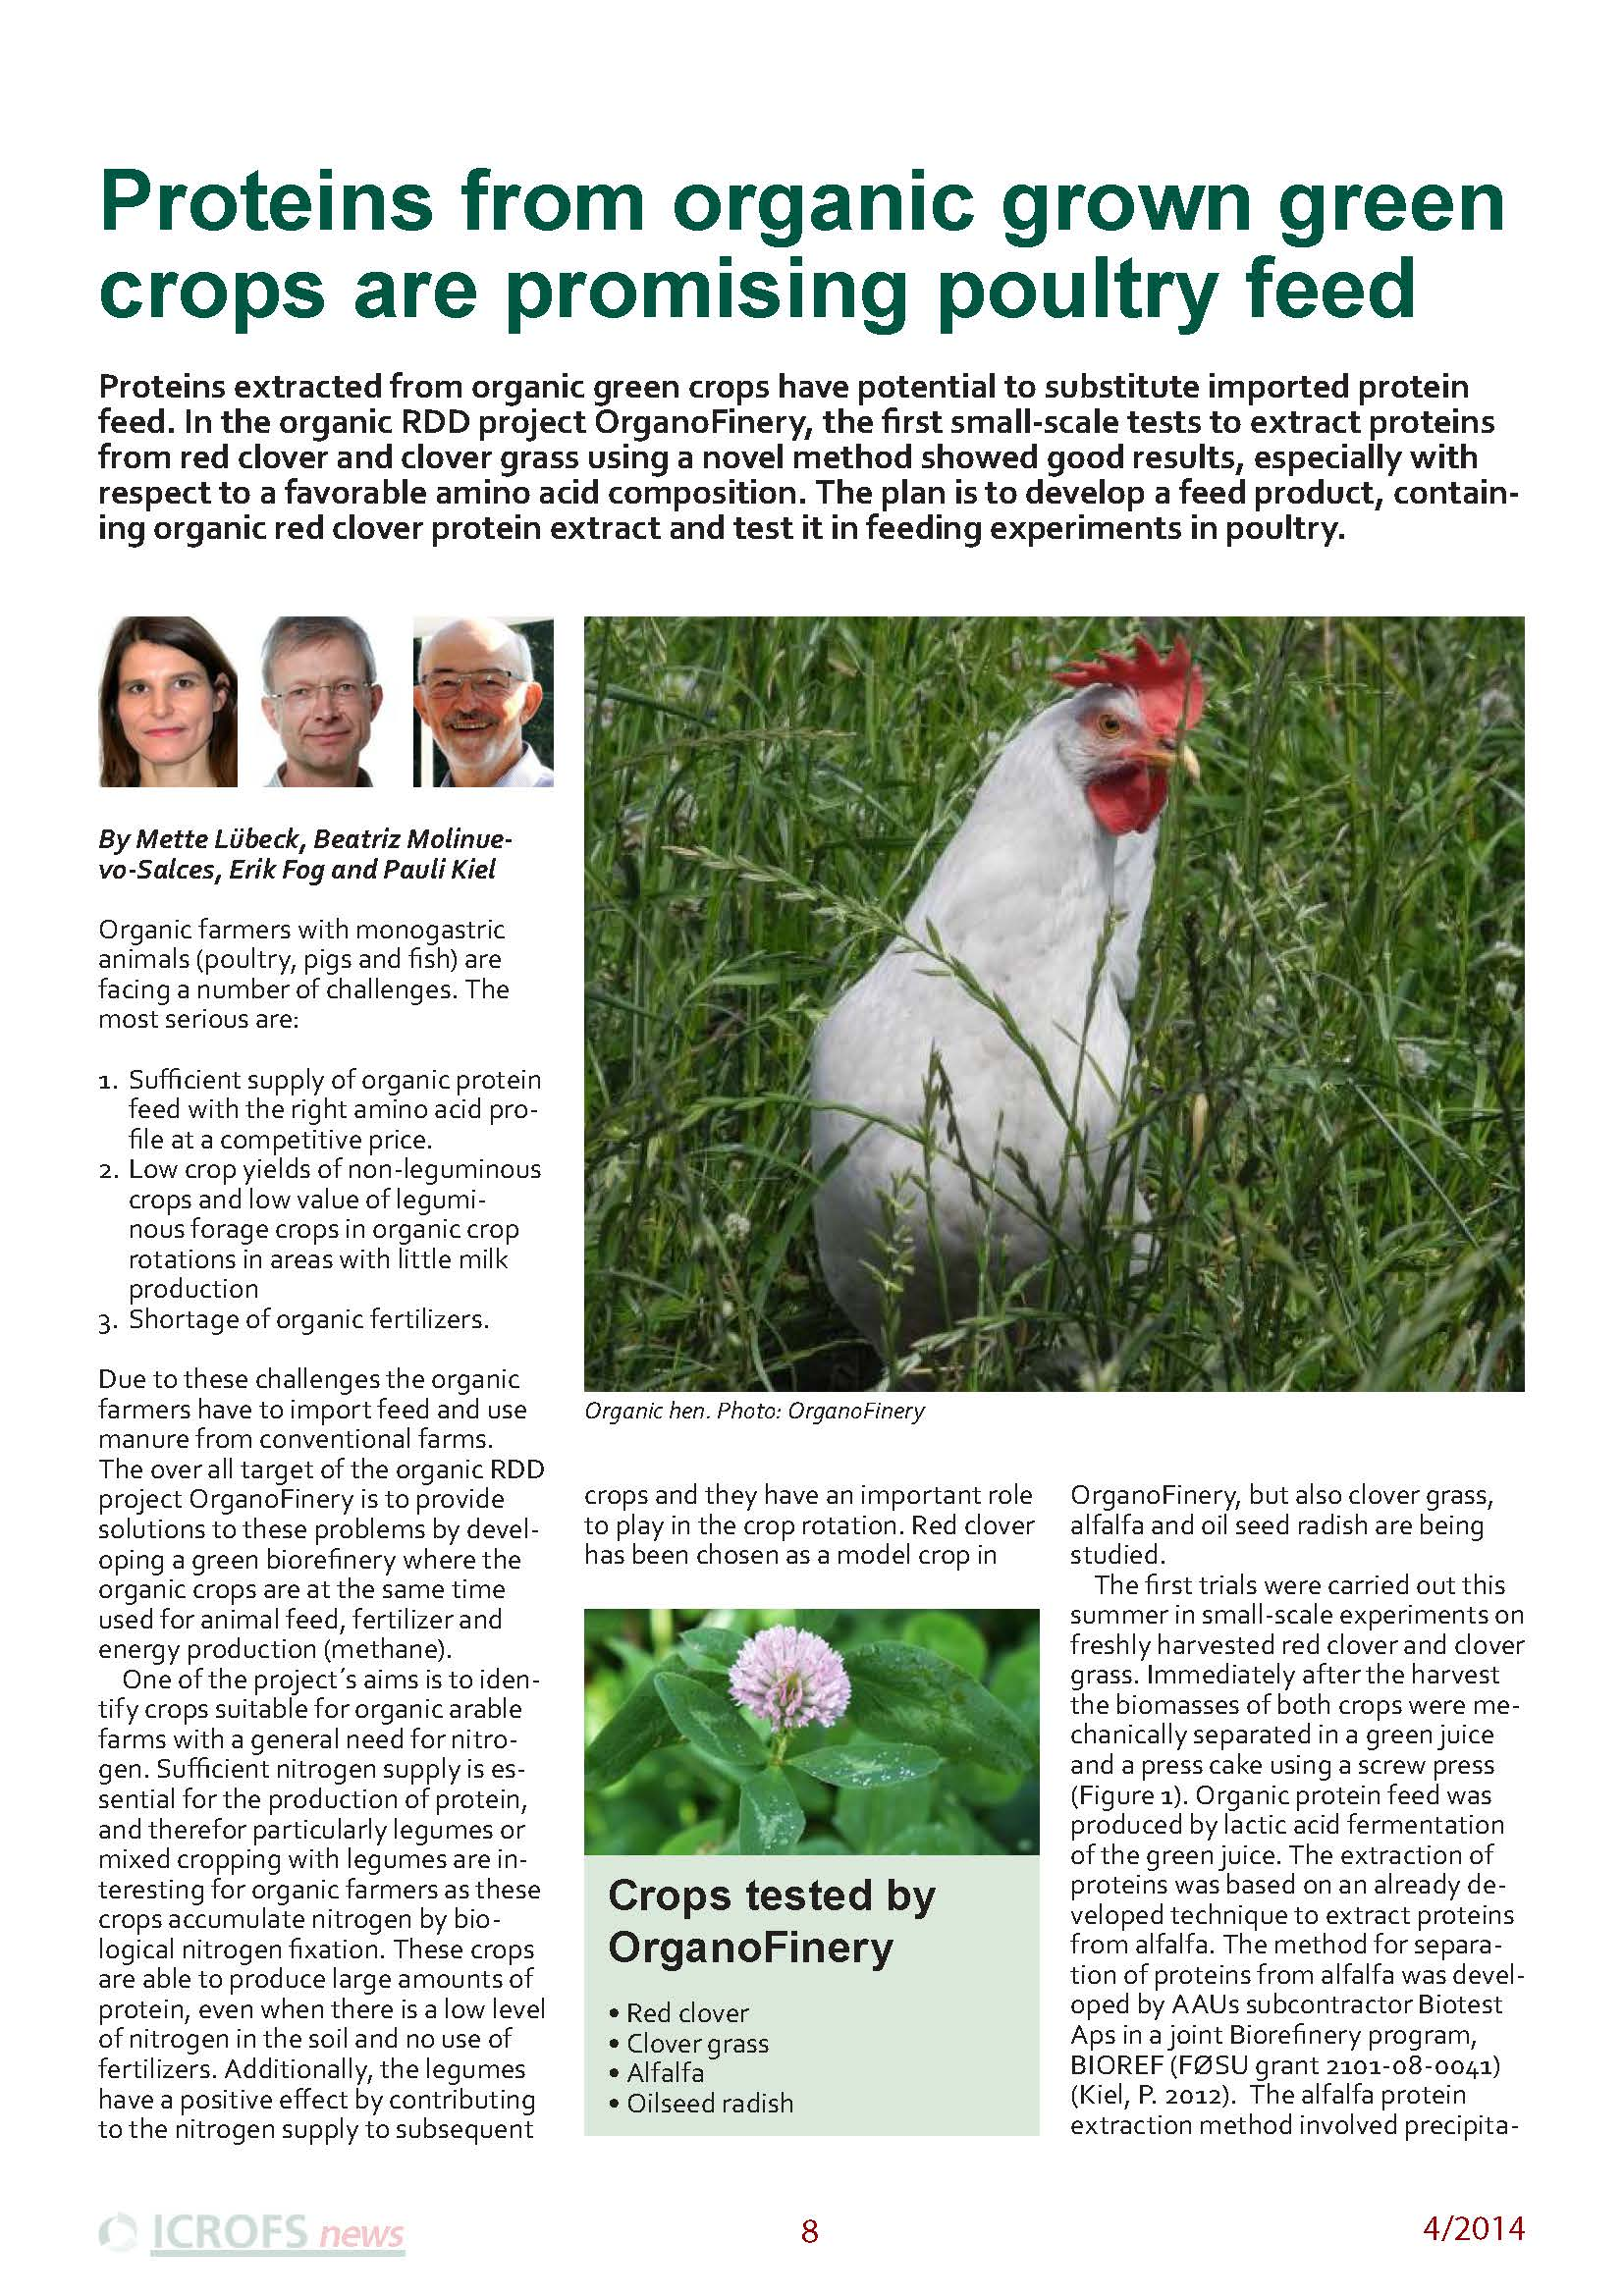 Proteins from organically grown green crops are promising poultry feed